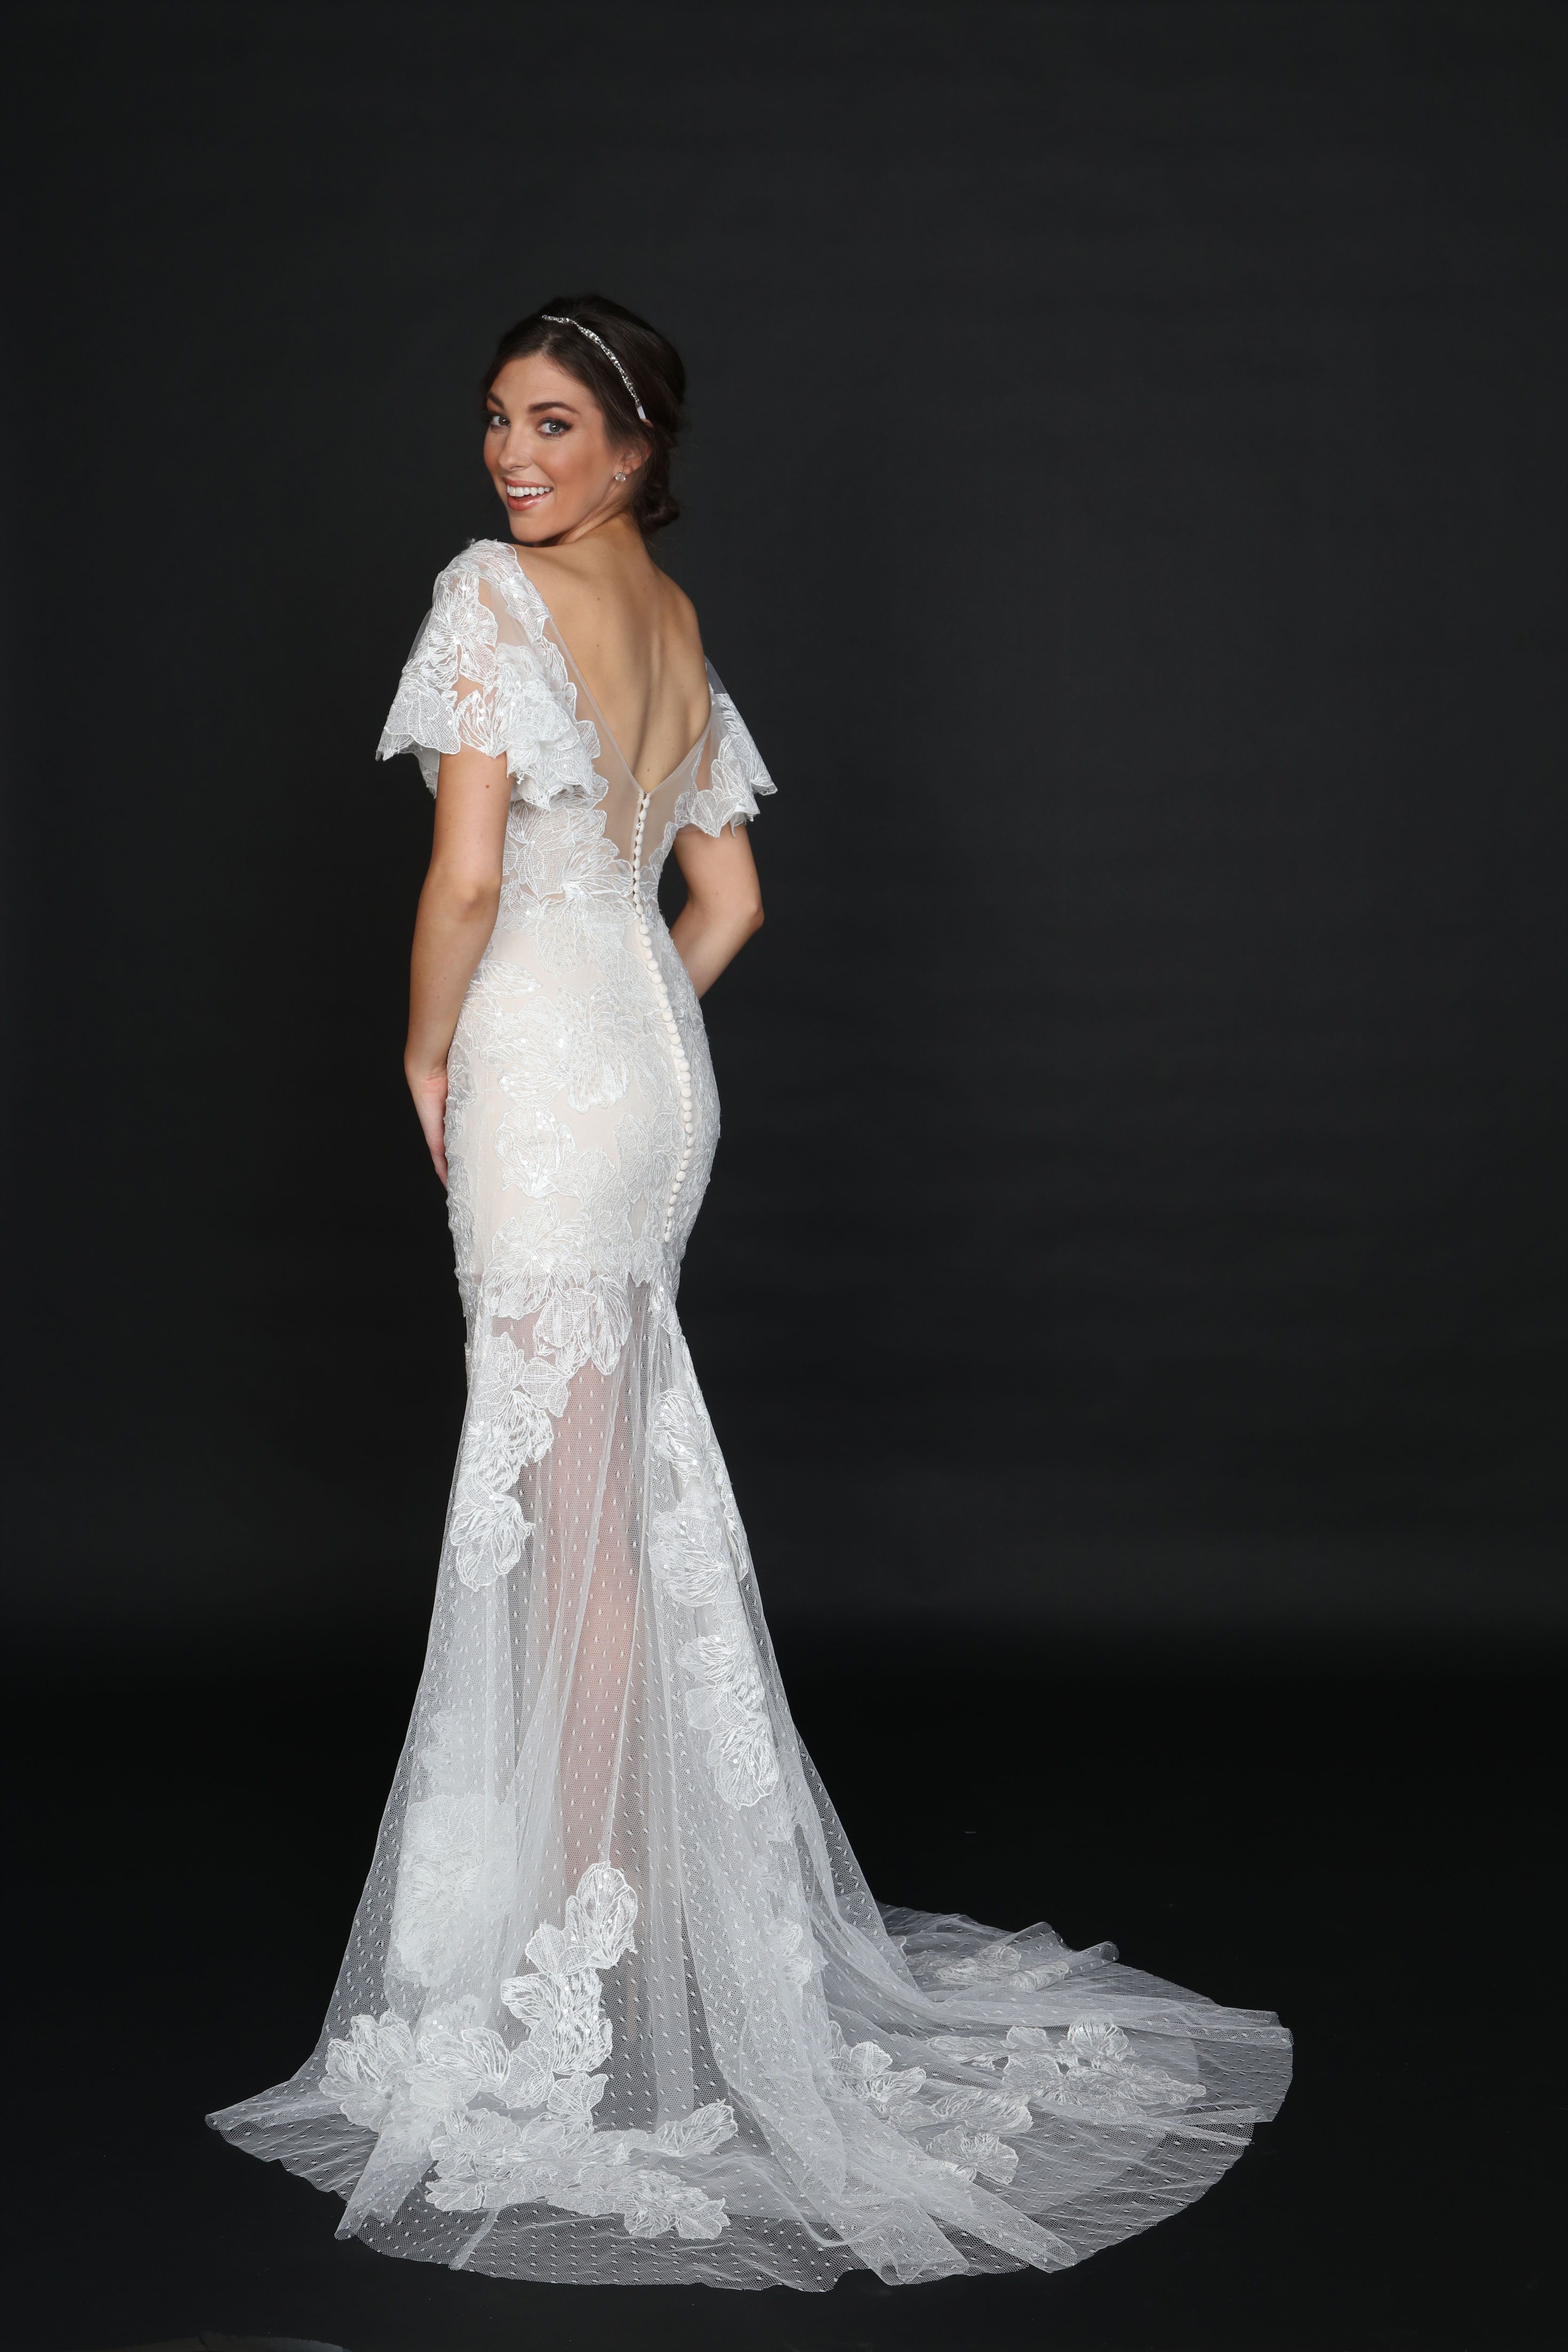 Evelyn bridal blog post our favorite wedding gowns with sleeves